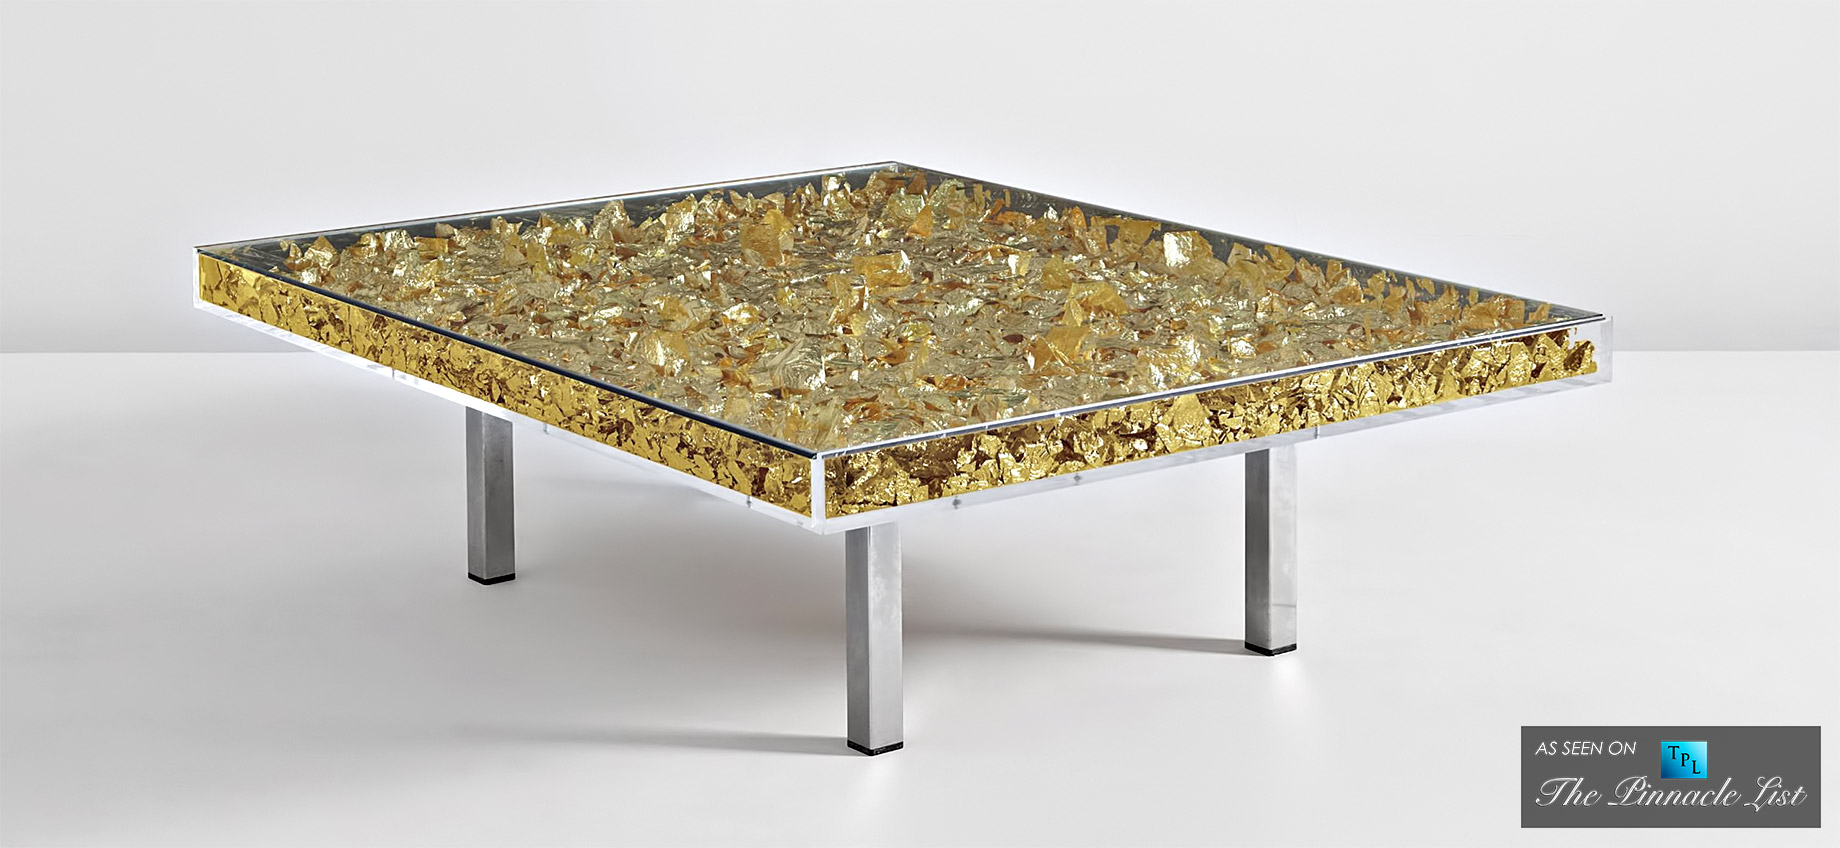 Table dor contemporary art as modern luxury furniture spotlighting the yves klein